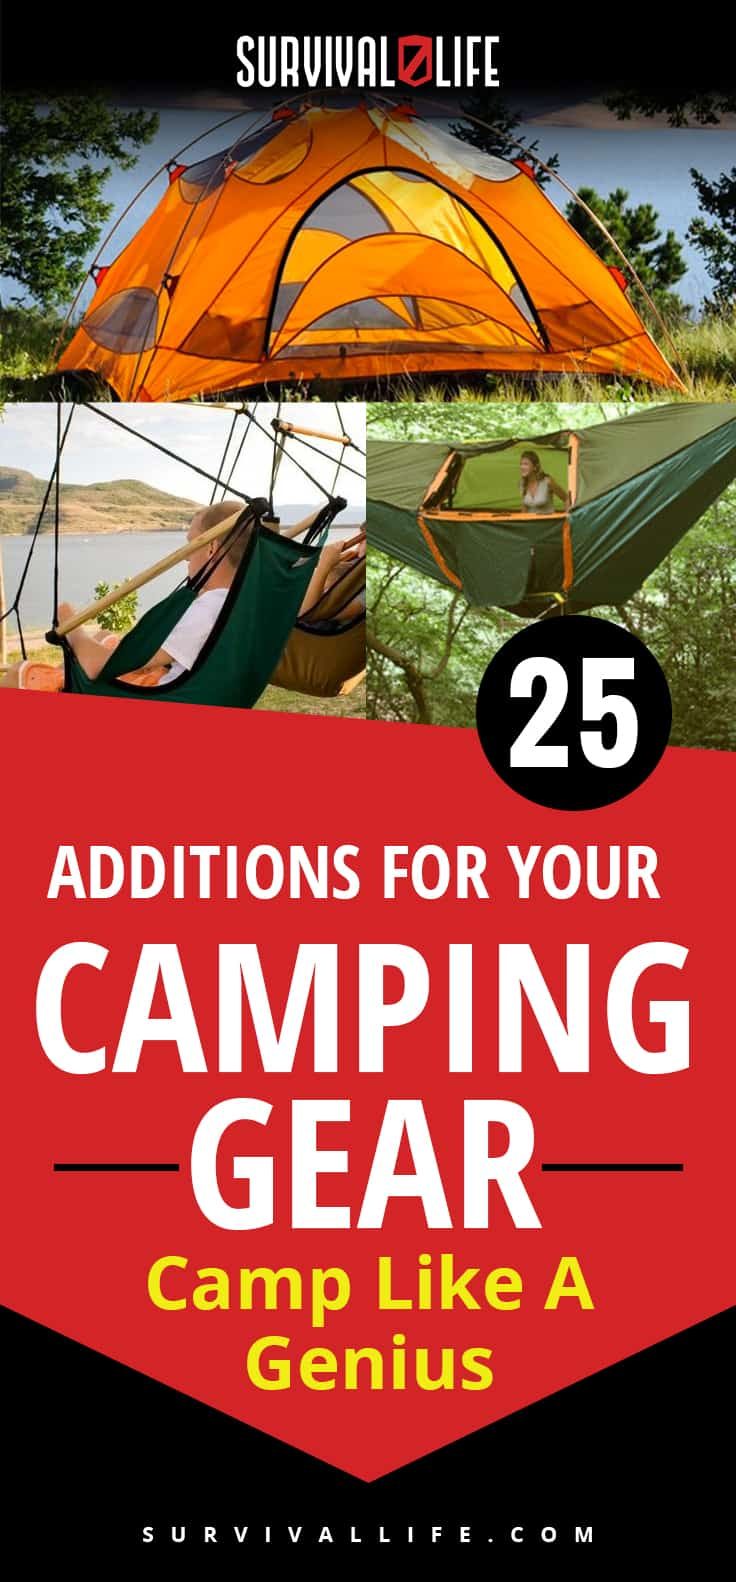 Camping Gears | Camp Like A Genius With These Additions | https://survivallife.com/camping-gears-should-have/